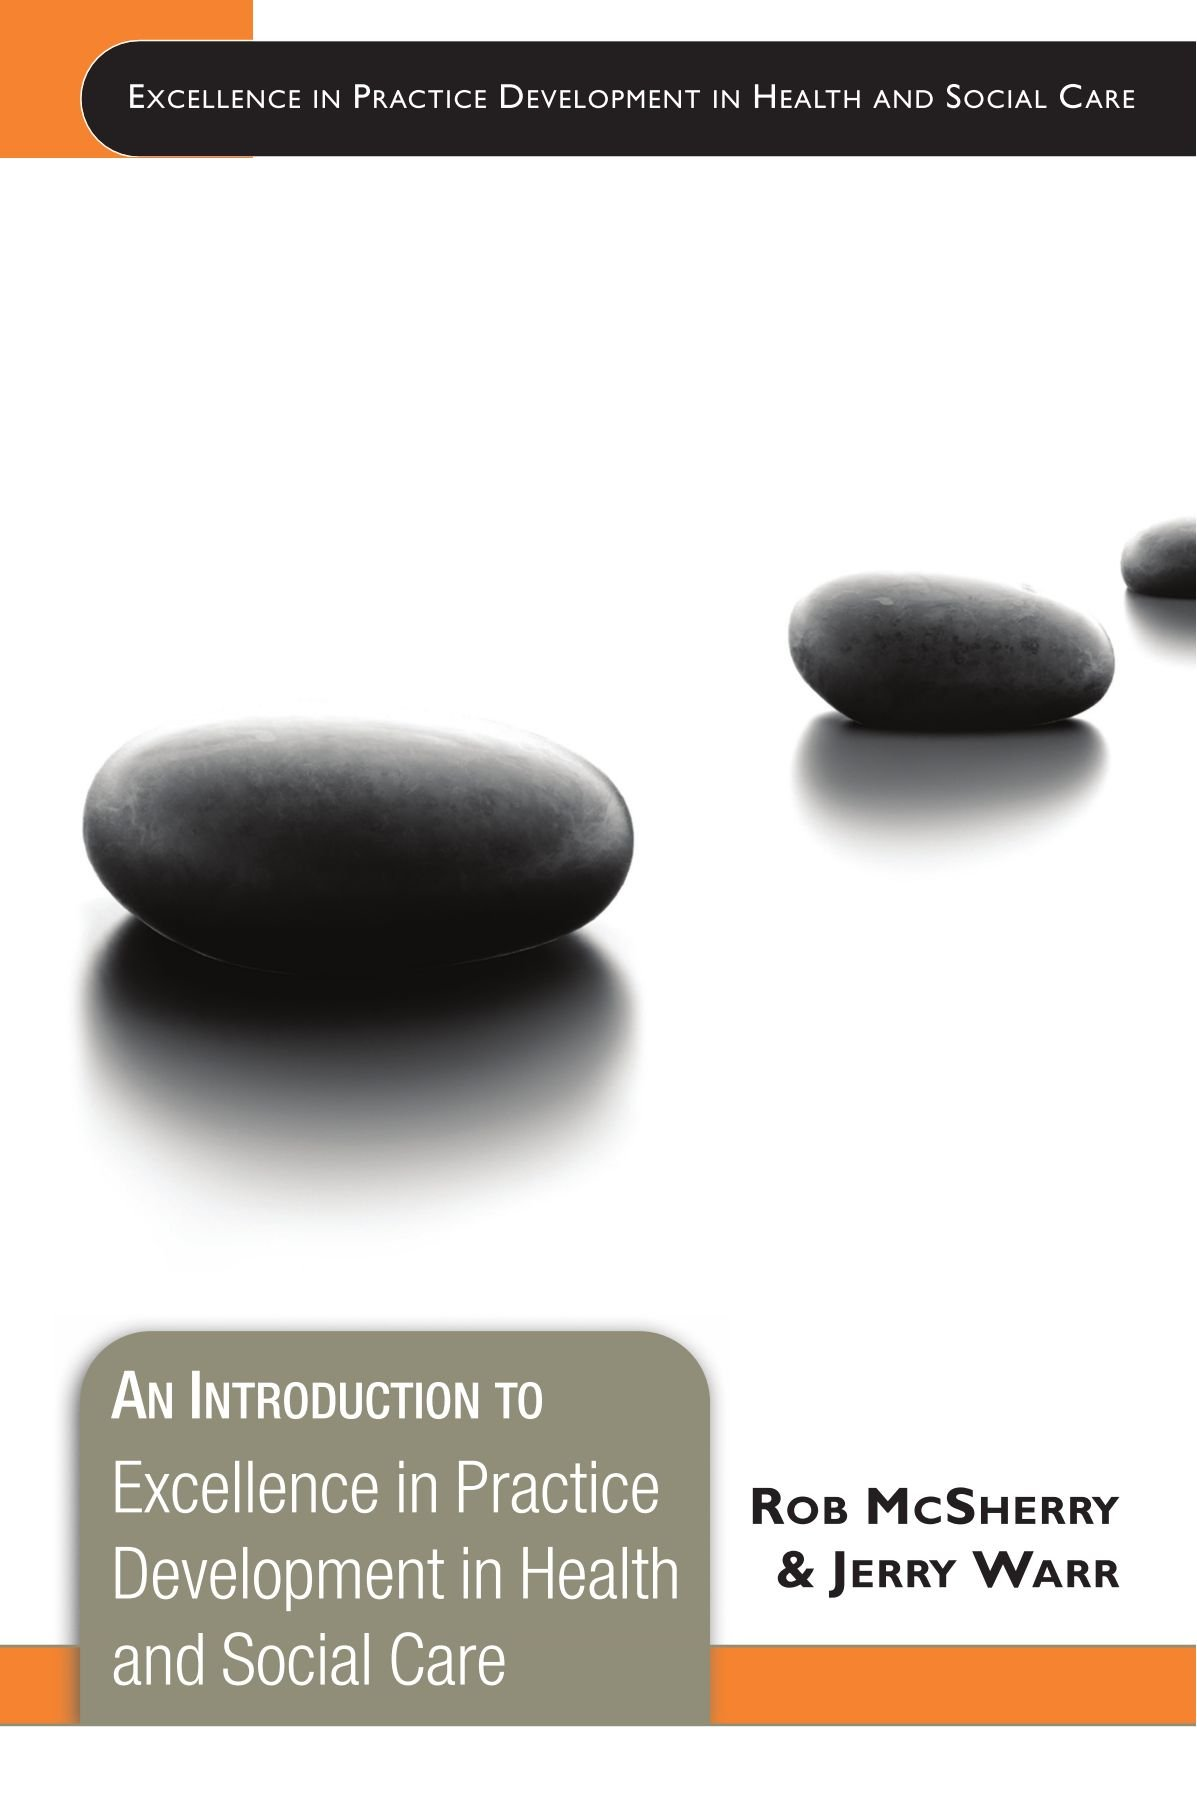 An Introduction to Excellence in Practice Development in Health and Social Care